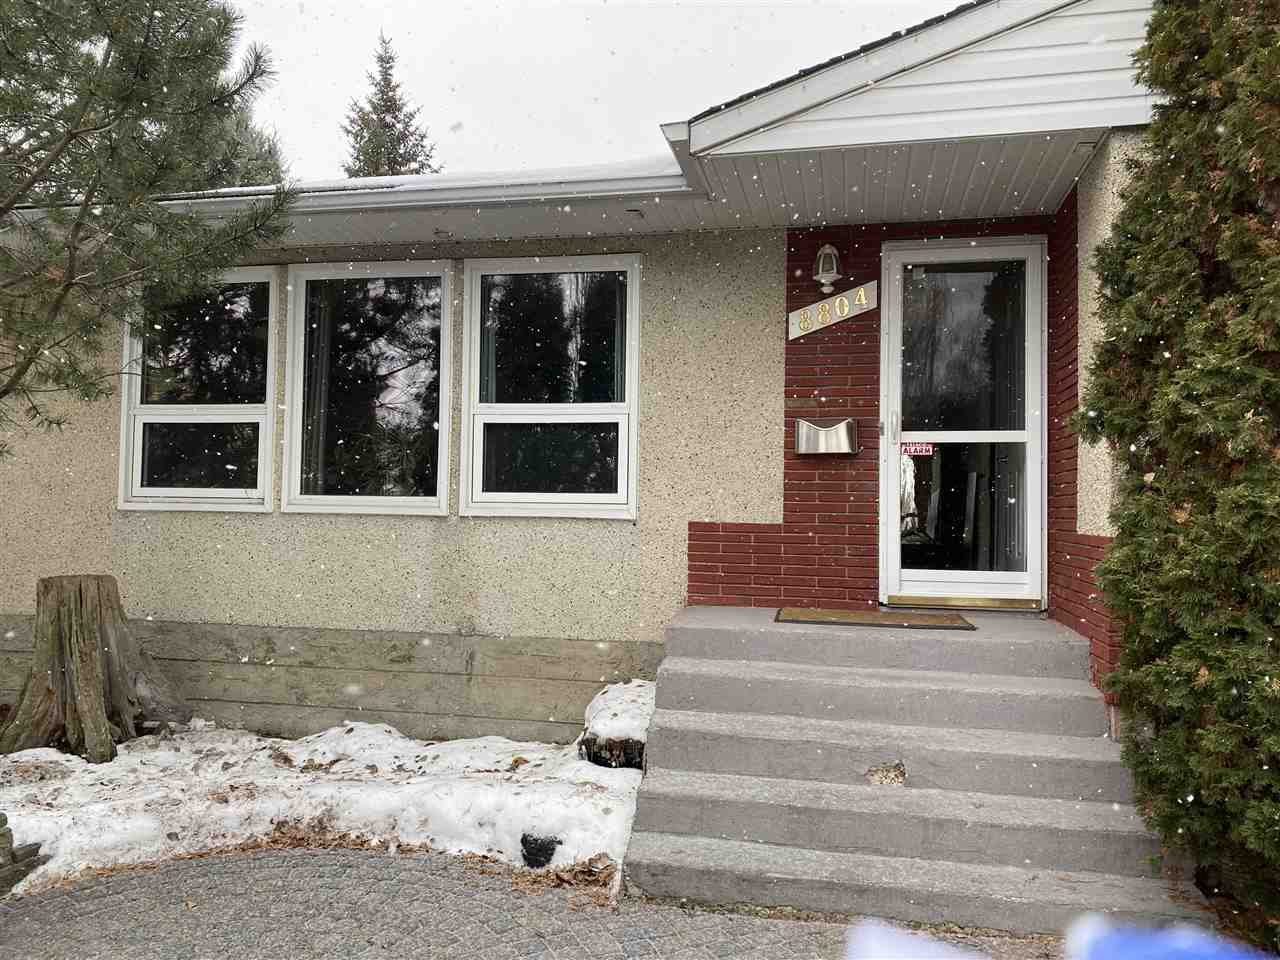 Main Photo: 8804 148 Street in Edmonton: Zone 10 House for sale : MLS®# E4223126